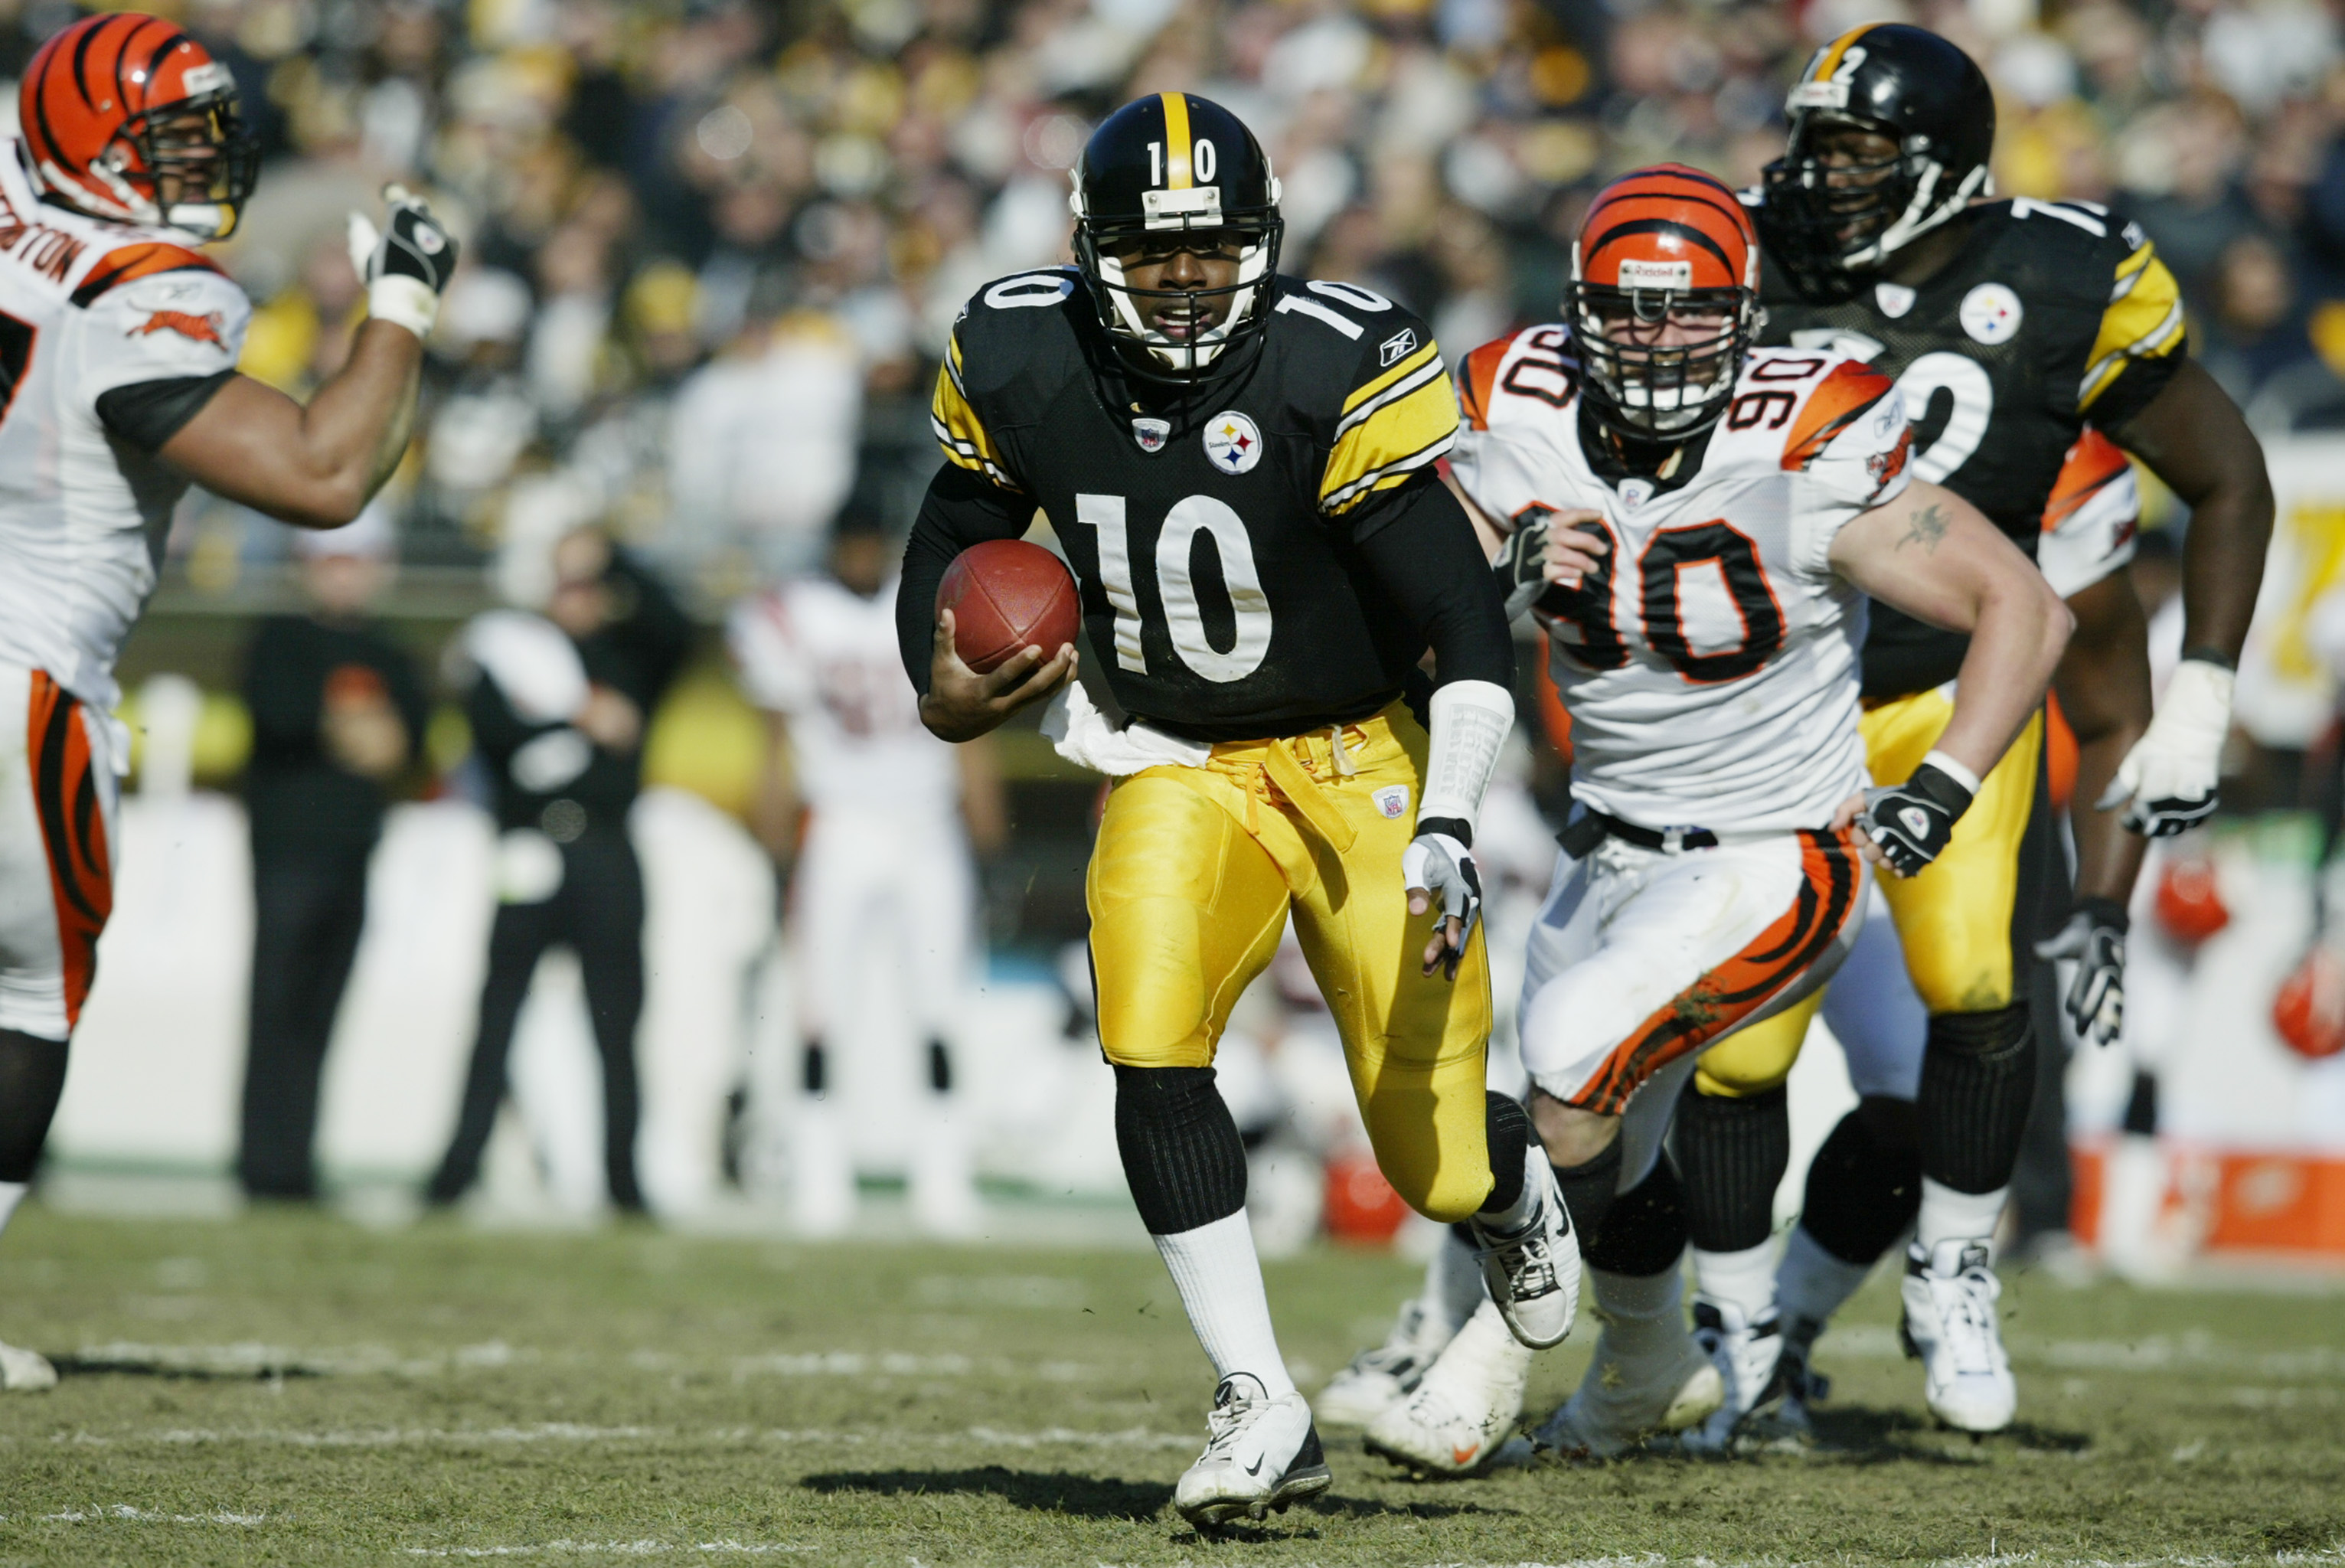 Kordell Stewart and the Pittsburgh Steelers won their first game ever at Heinz Field